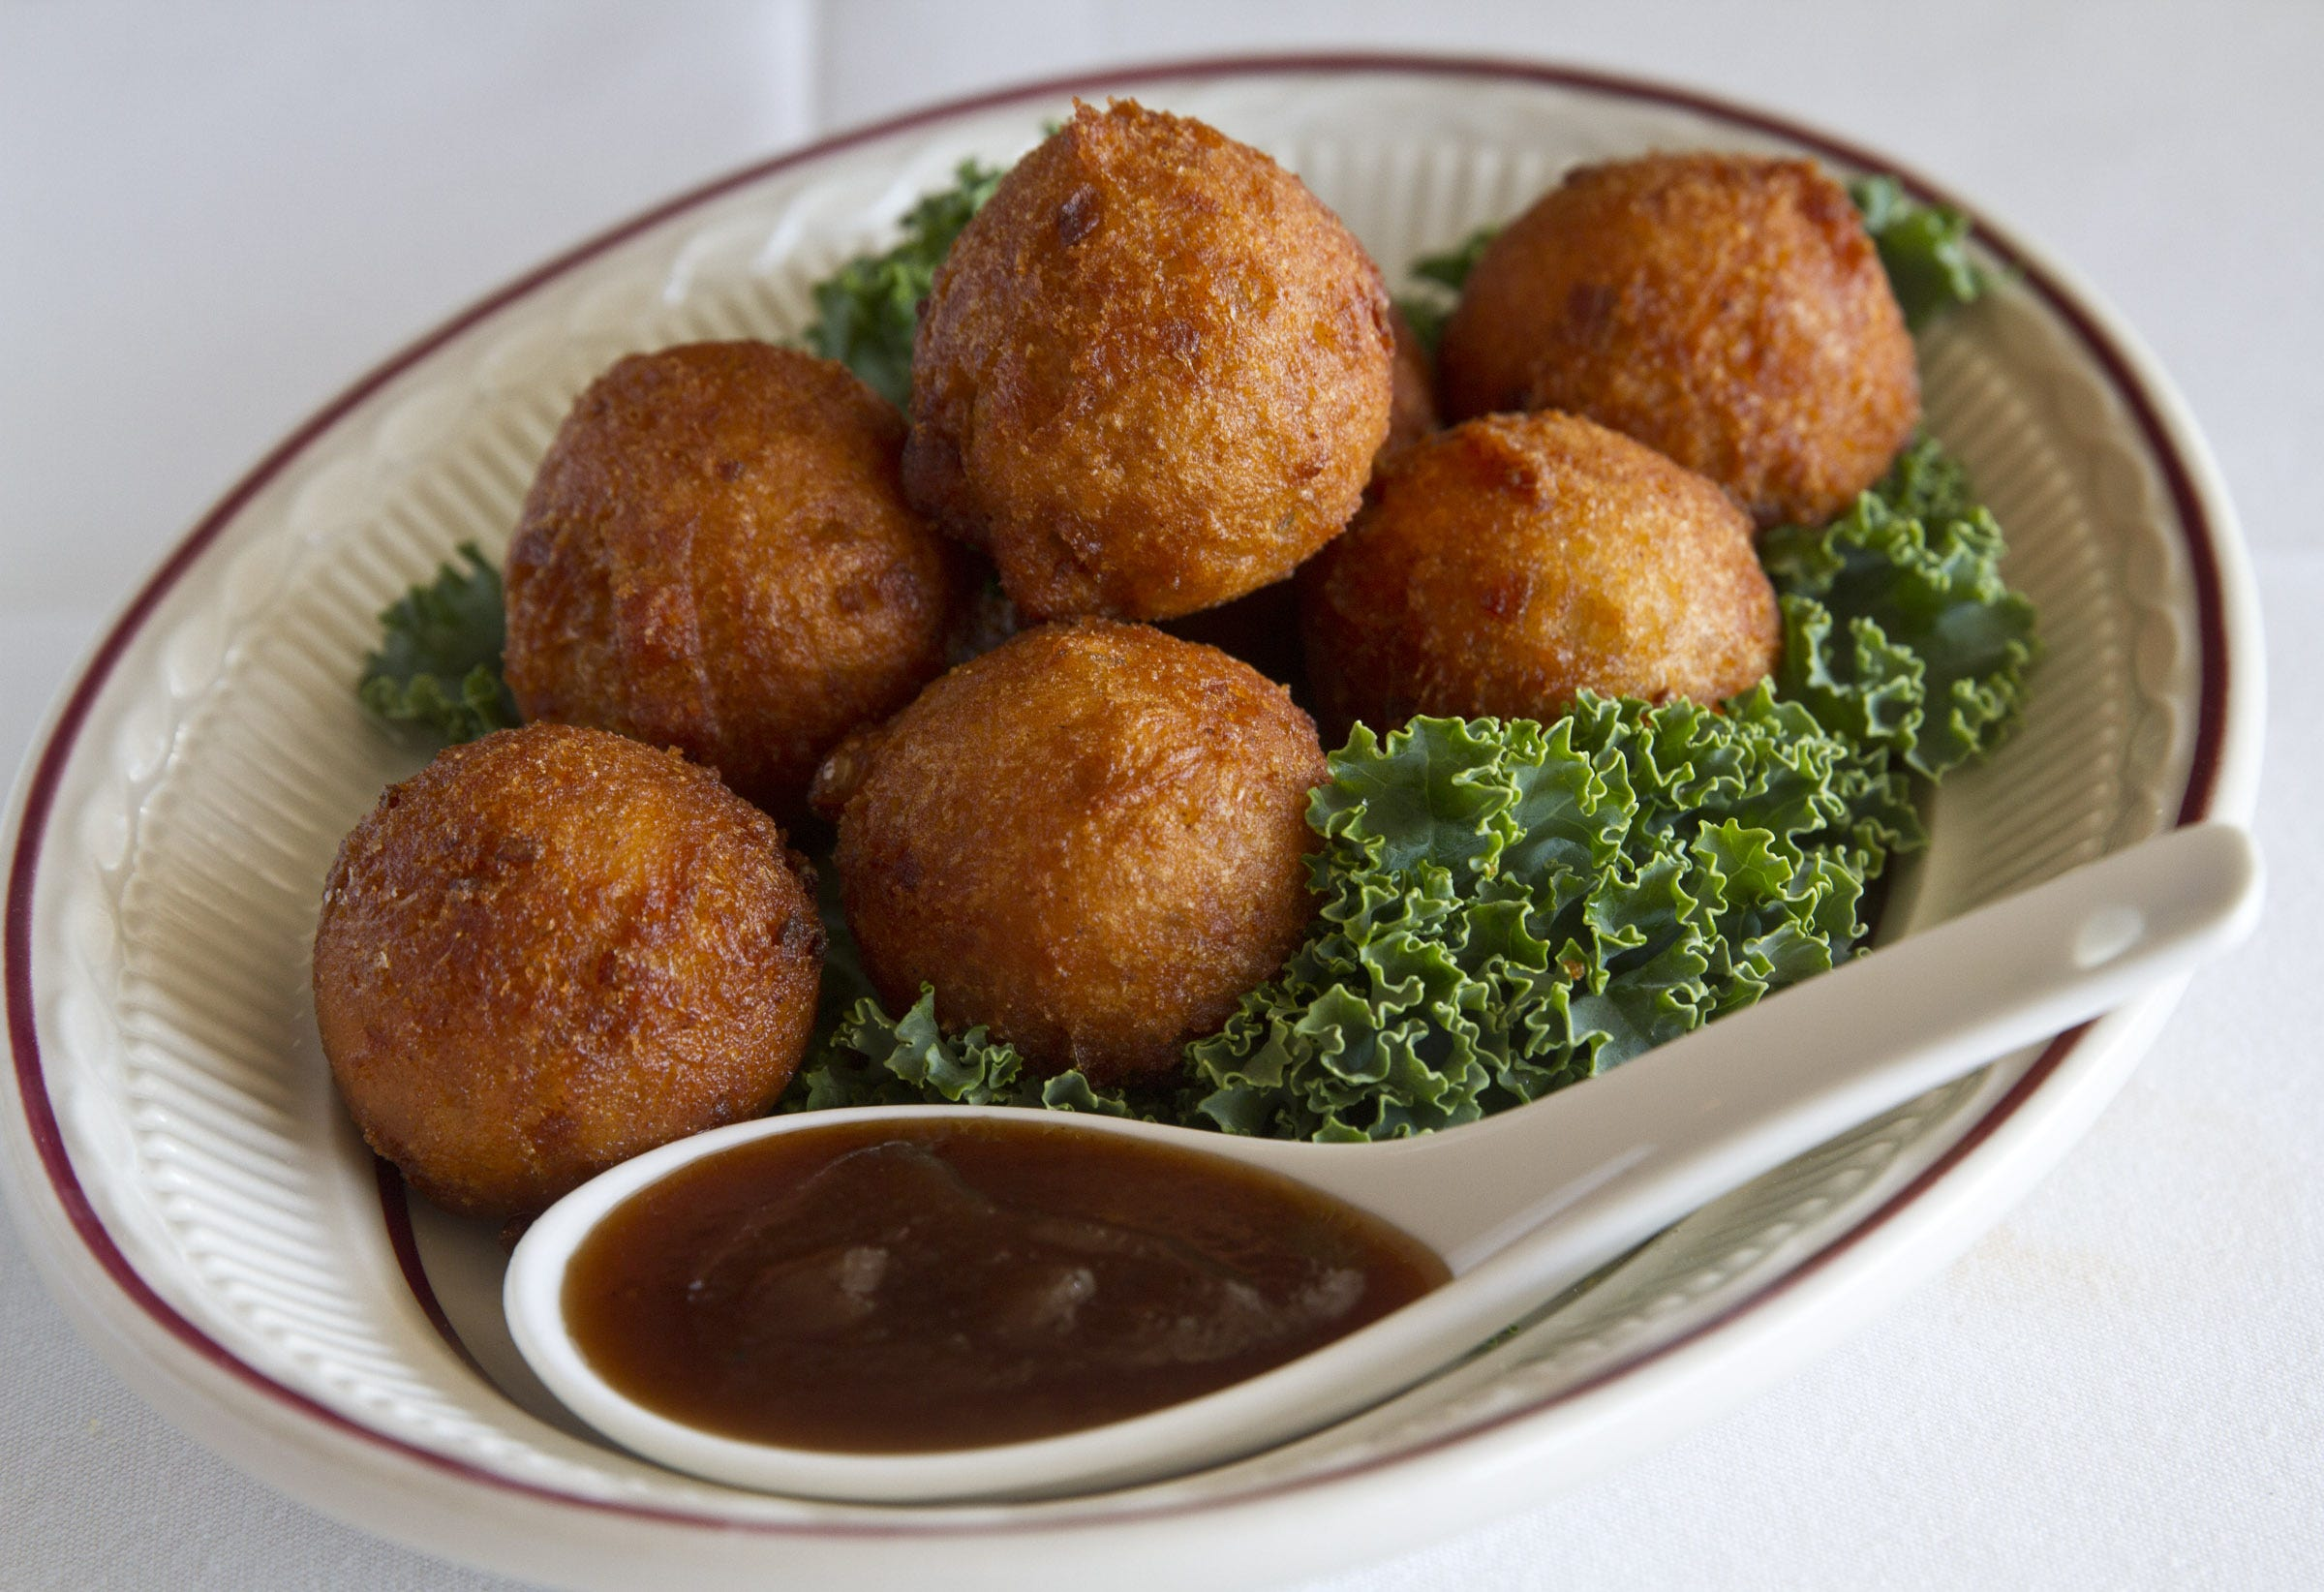 """""""Hush puppies"""" are said to have gotten their name from Southern hunters and fishermen who would fry up cornmeal balls to feed to their -- presumably noisy -- dogs. These  sweet potato hush puppies are served at Simply Southern in Belmar."""